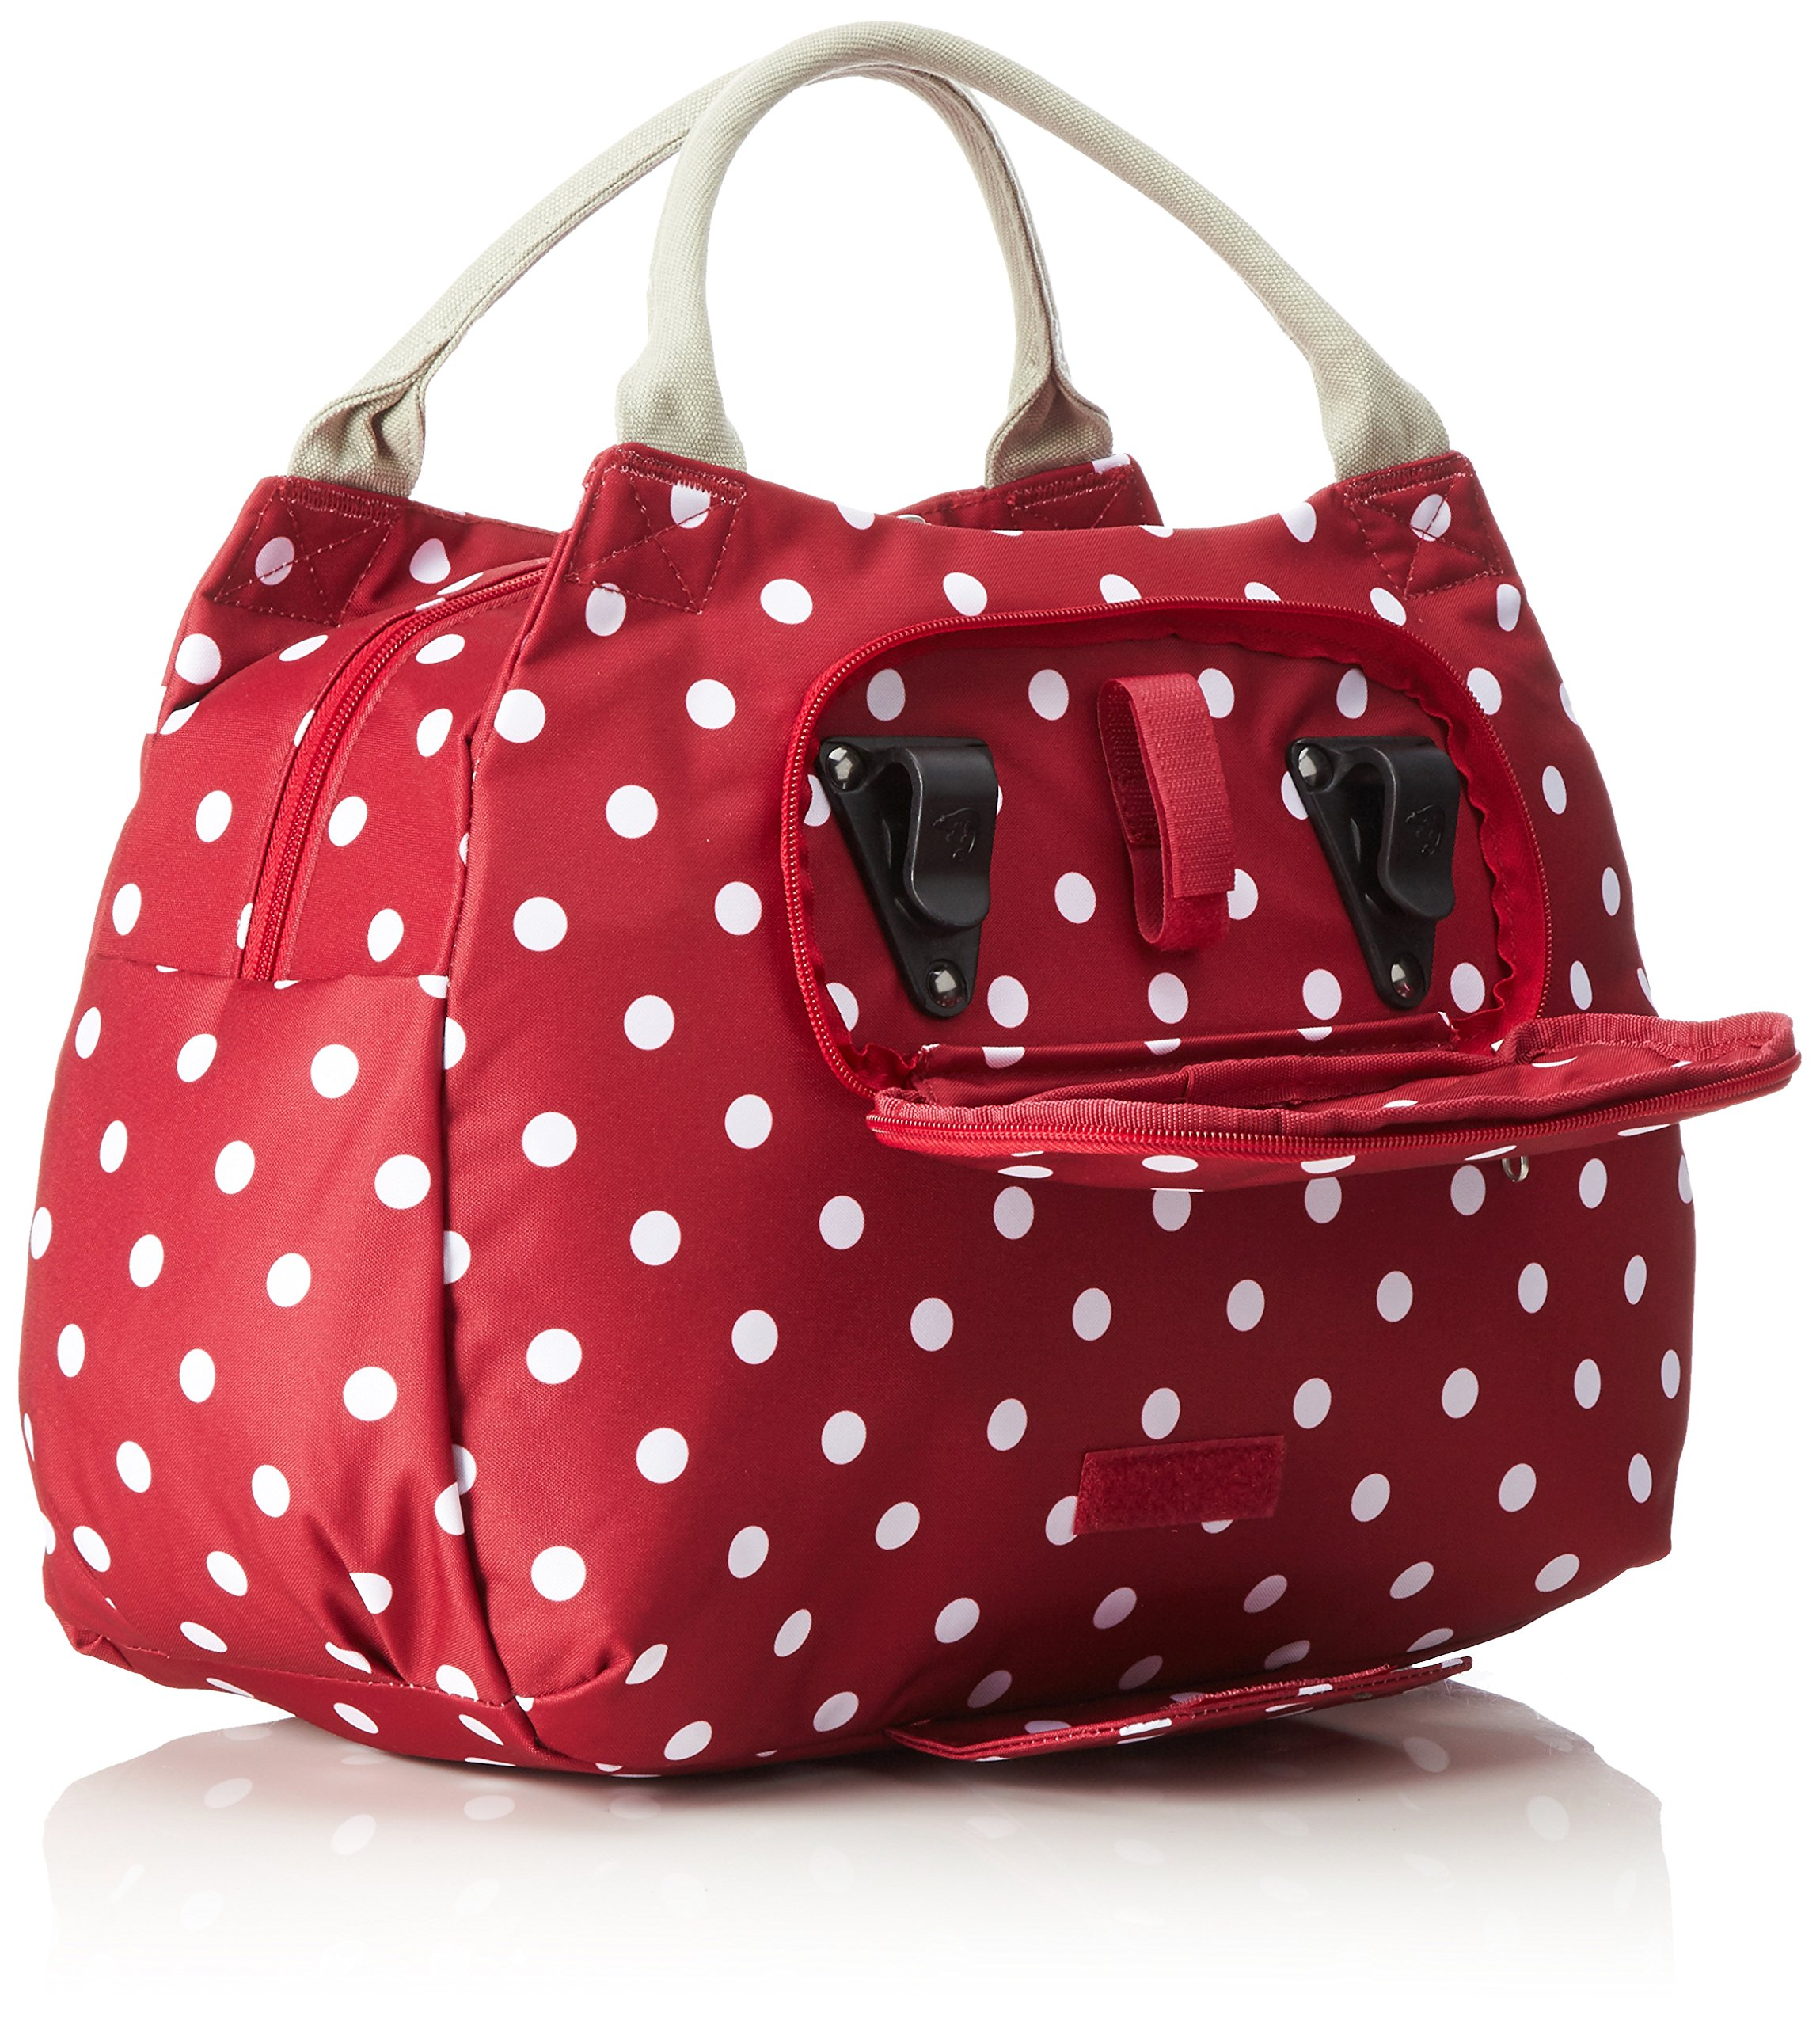 New Looxs Tosca handbag with polka dots, red [Sports] by New (Image #6)